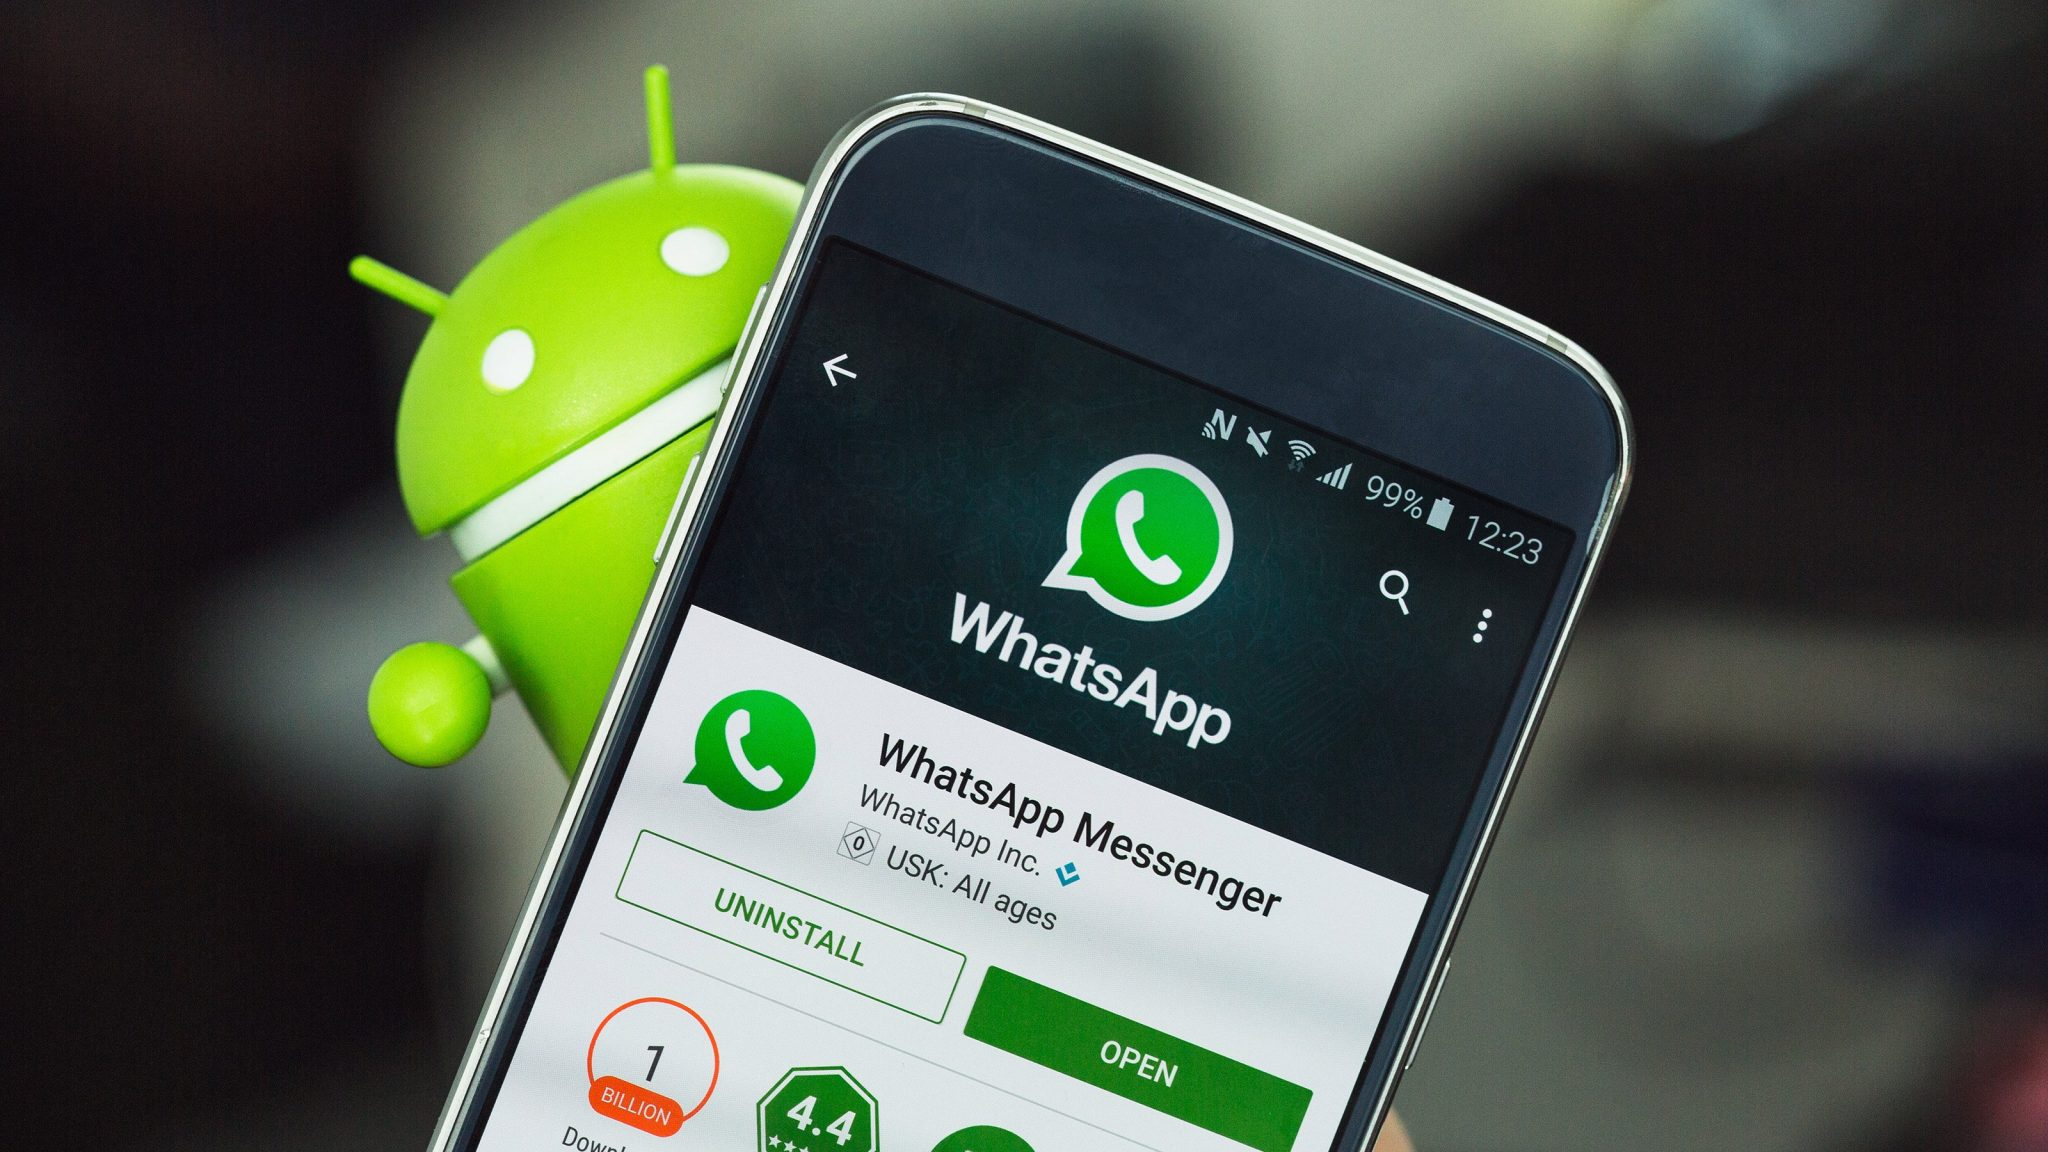 WhatsApp for iOS Brings Notification Status and More